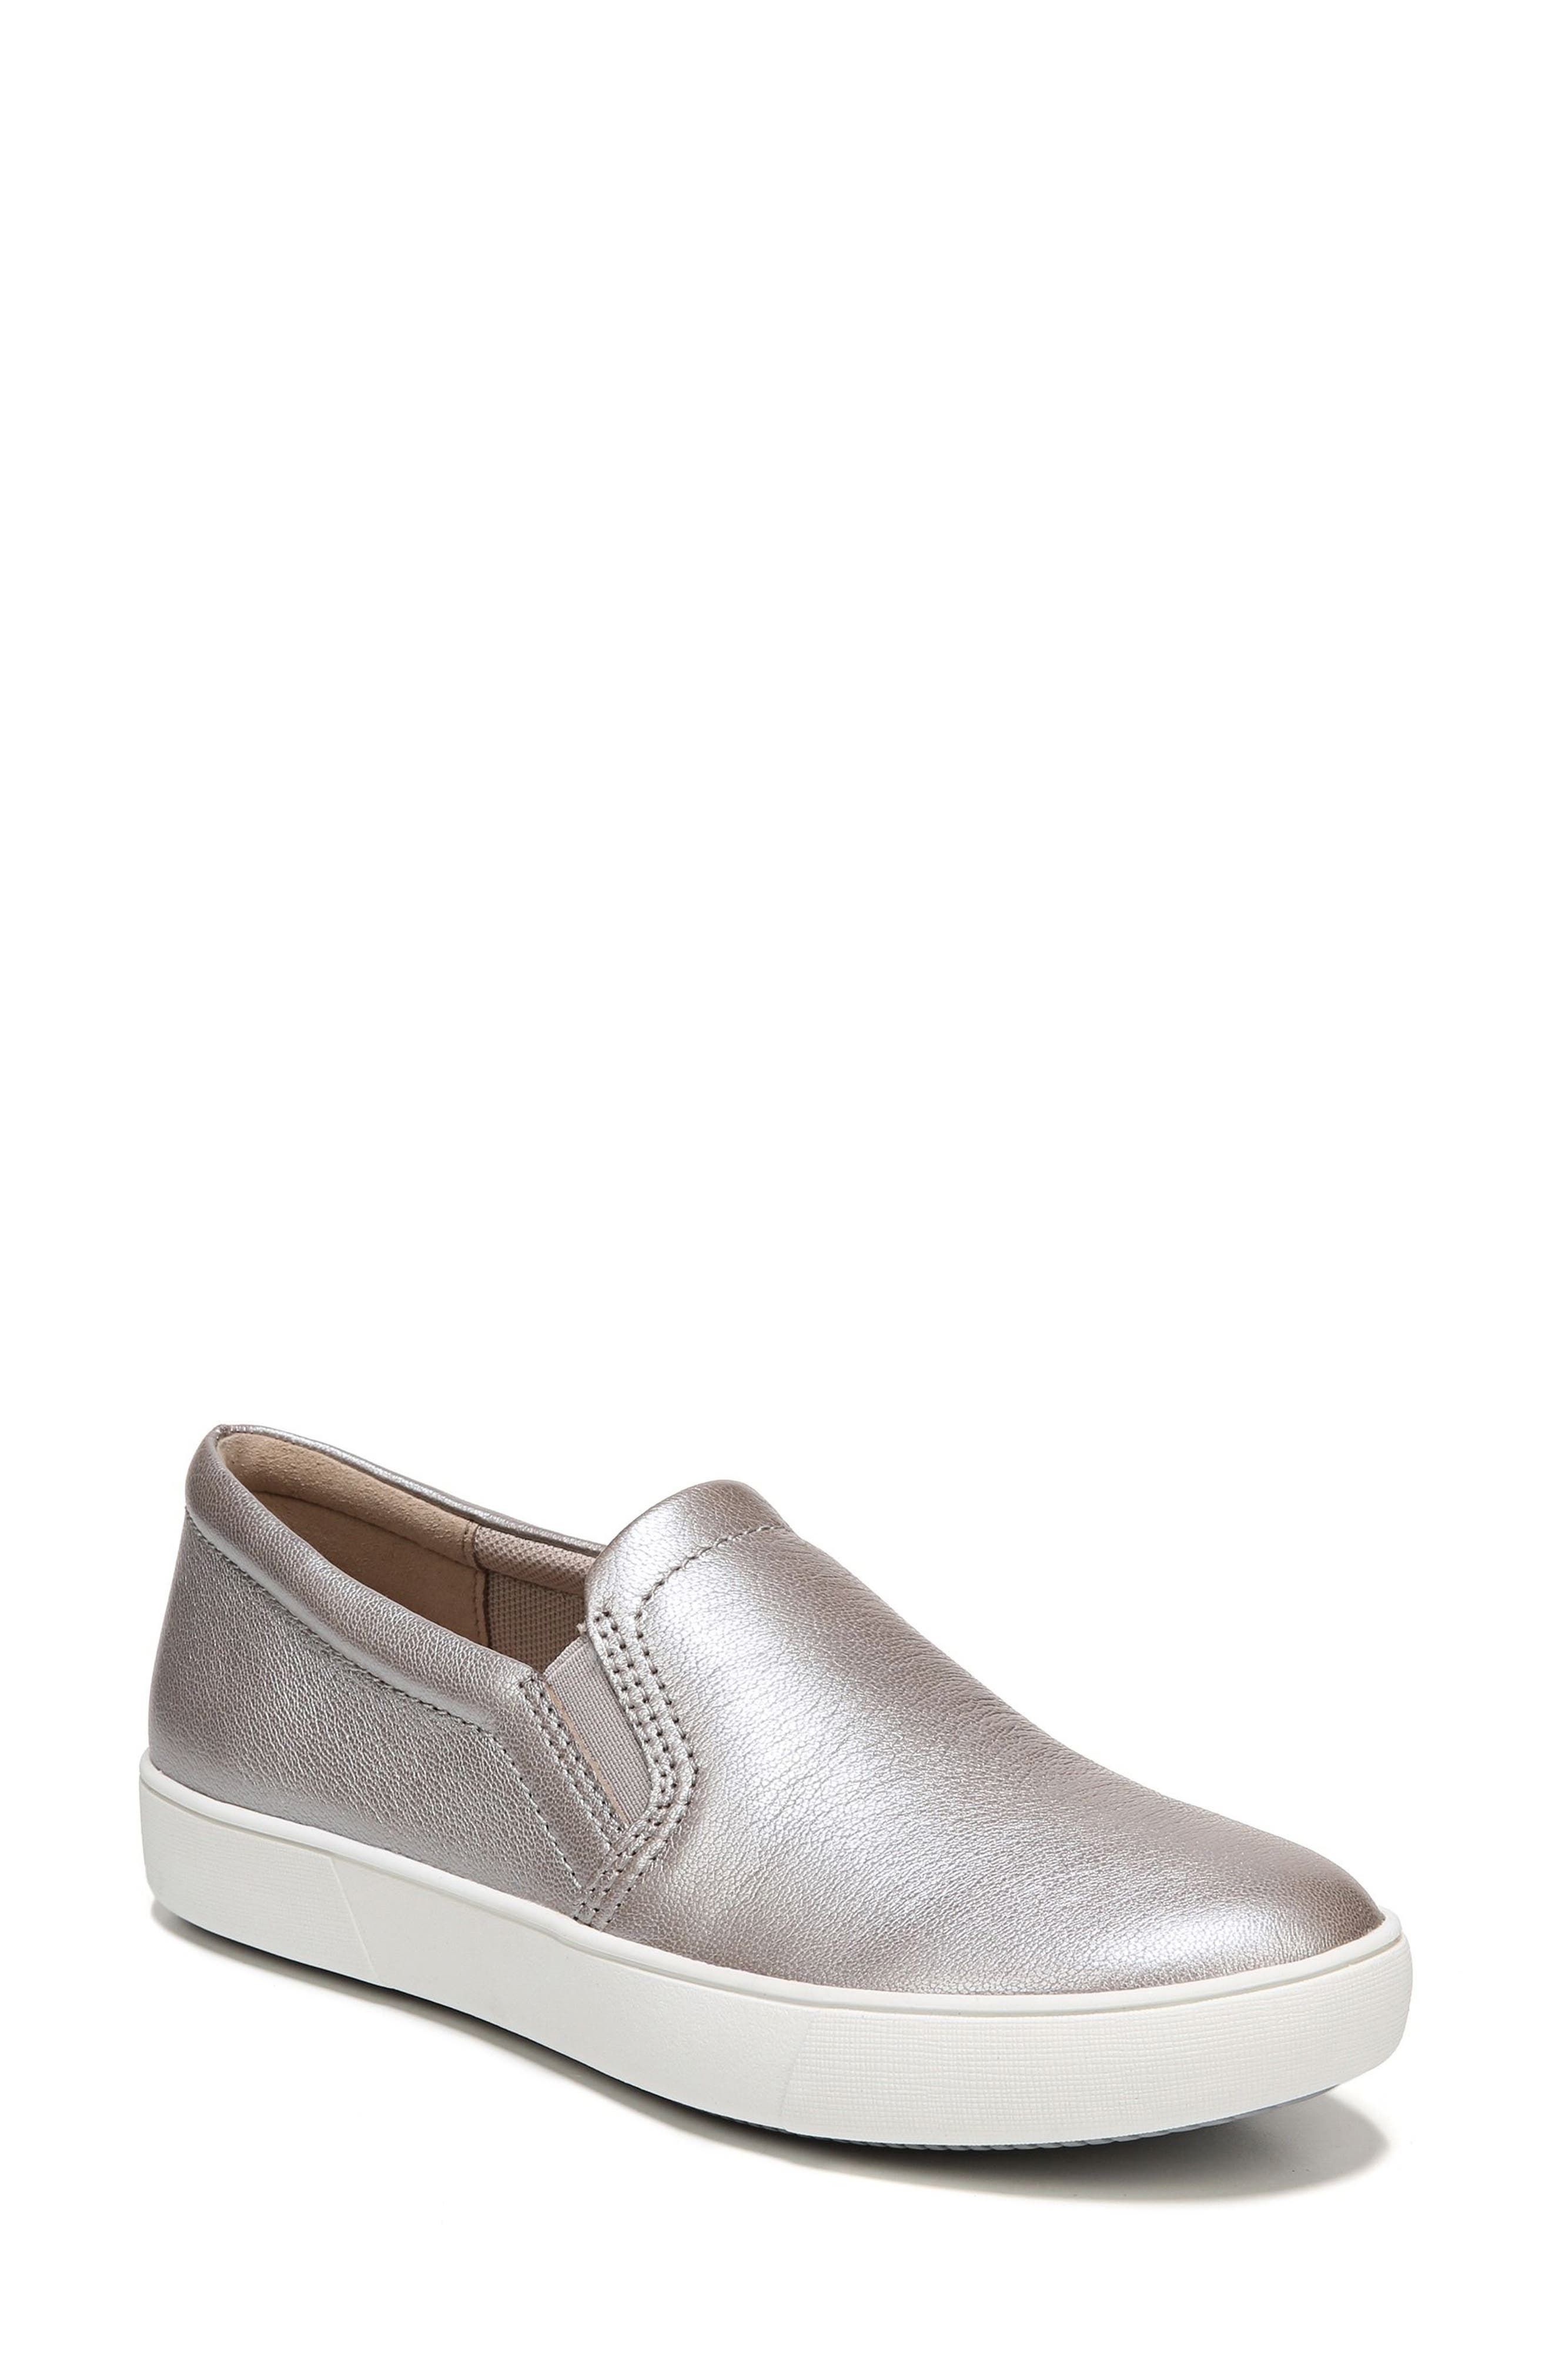 Marianne Slip-On Sneaker,                         Main,                         color, SILVER LEATHER